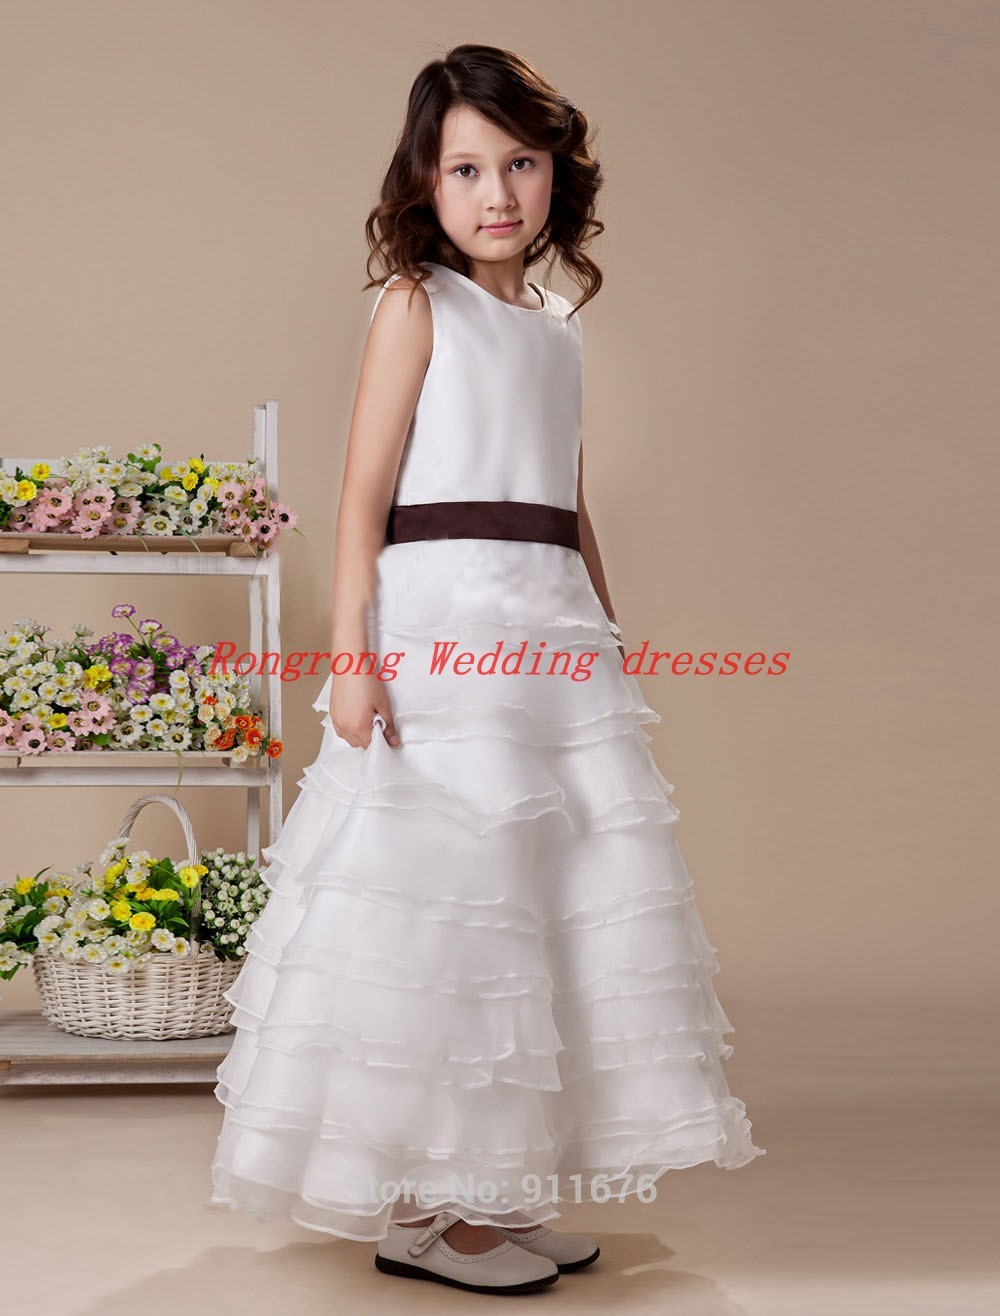 2014 New sexy Girl's Pageant Dresses Cute Princess Ball Gowns Party Flower Girl Ruffles child bridesmaid first communion Dress(China (Mainland))